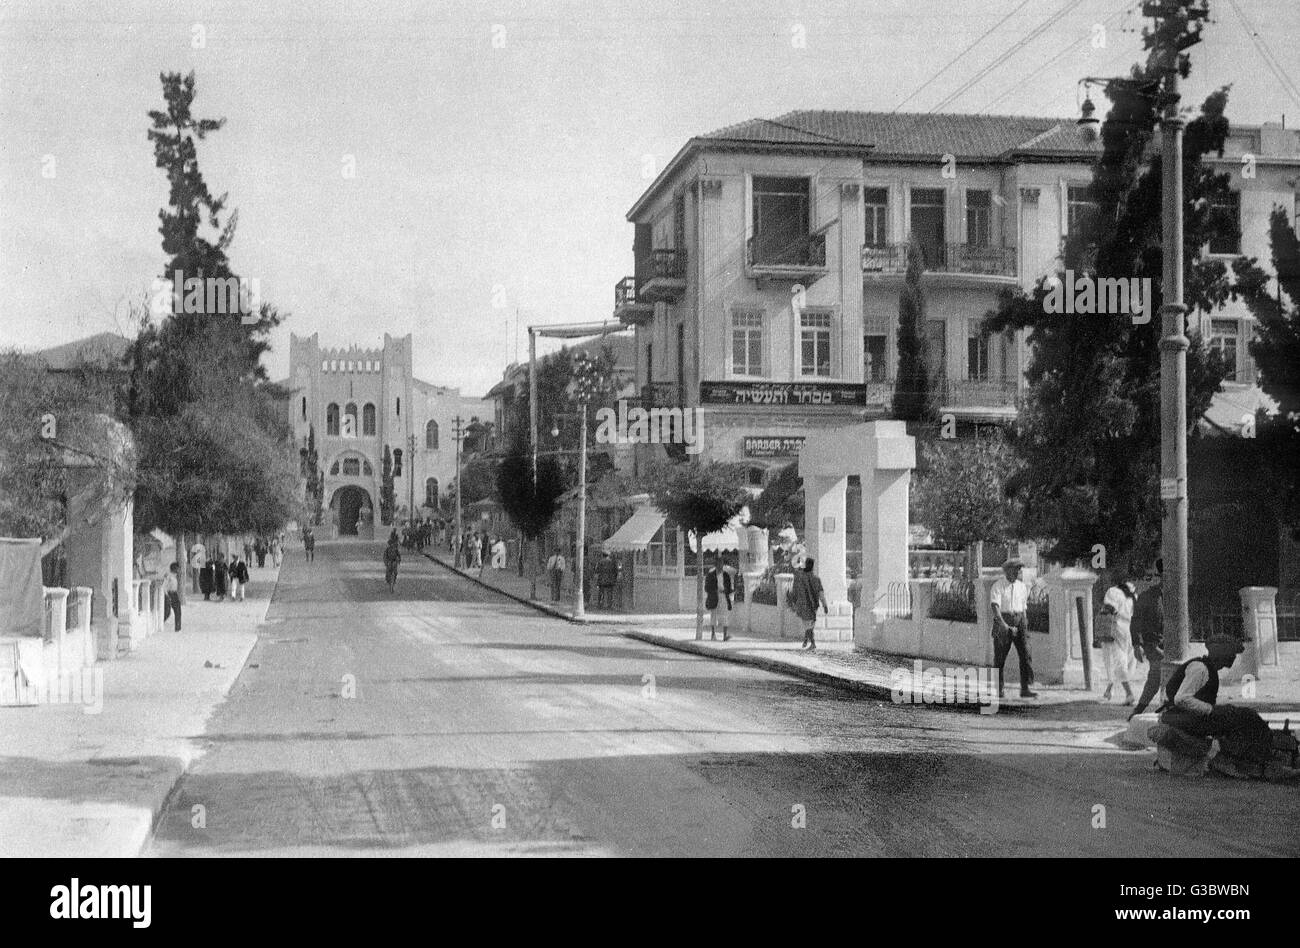 Street scene in the city of Tel Aviv, Western Israel.      Date: 1920s - Stock Image